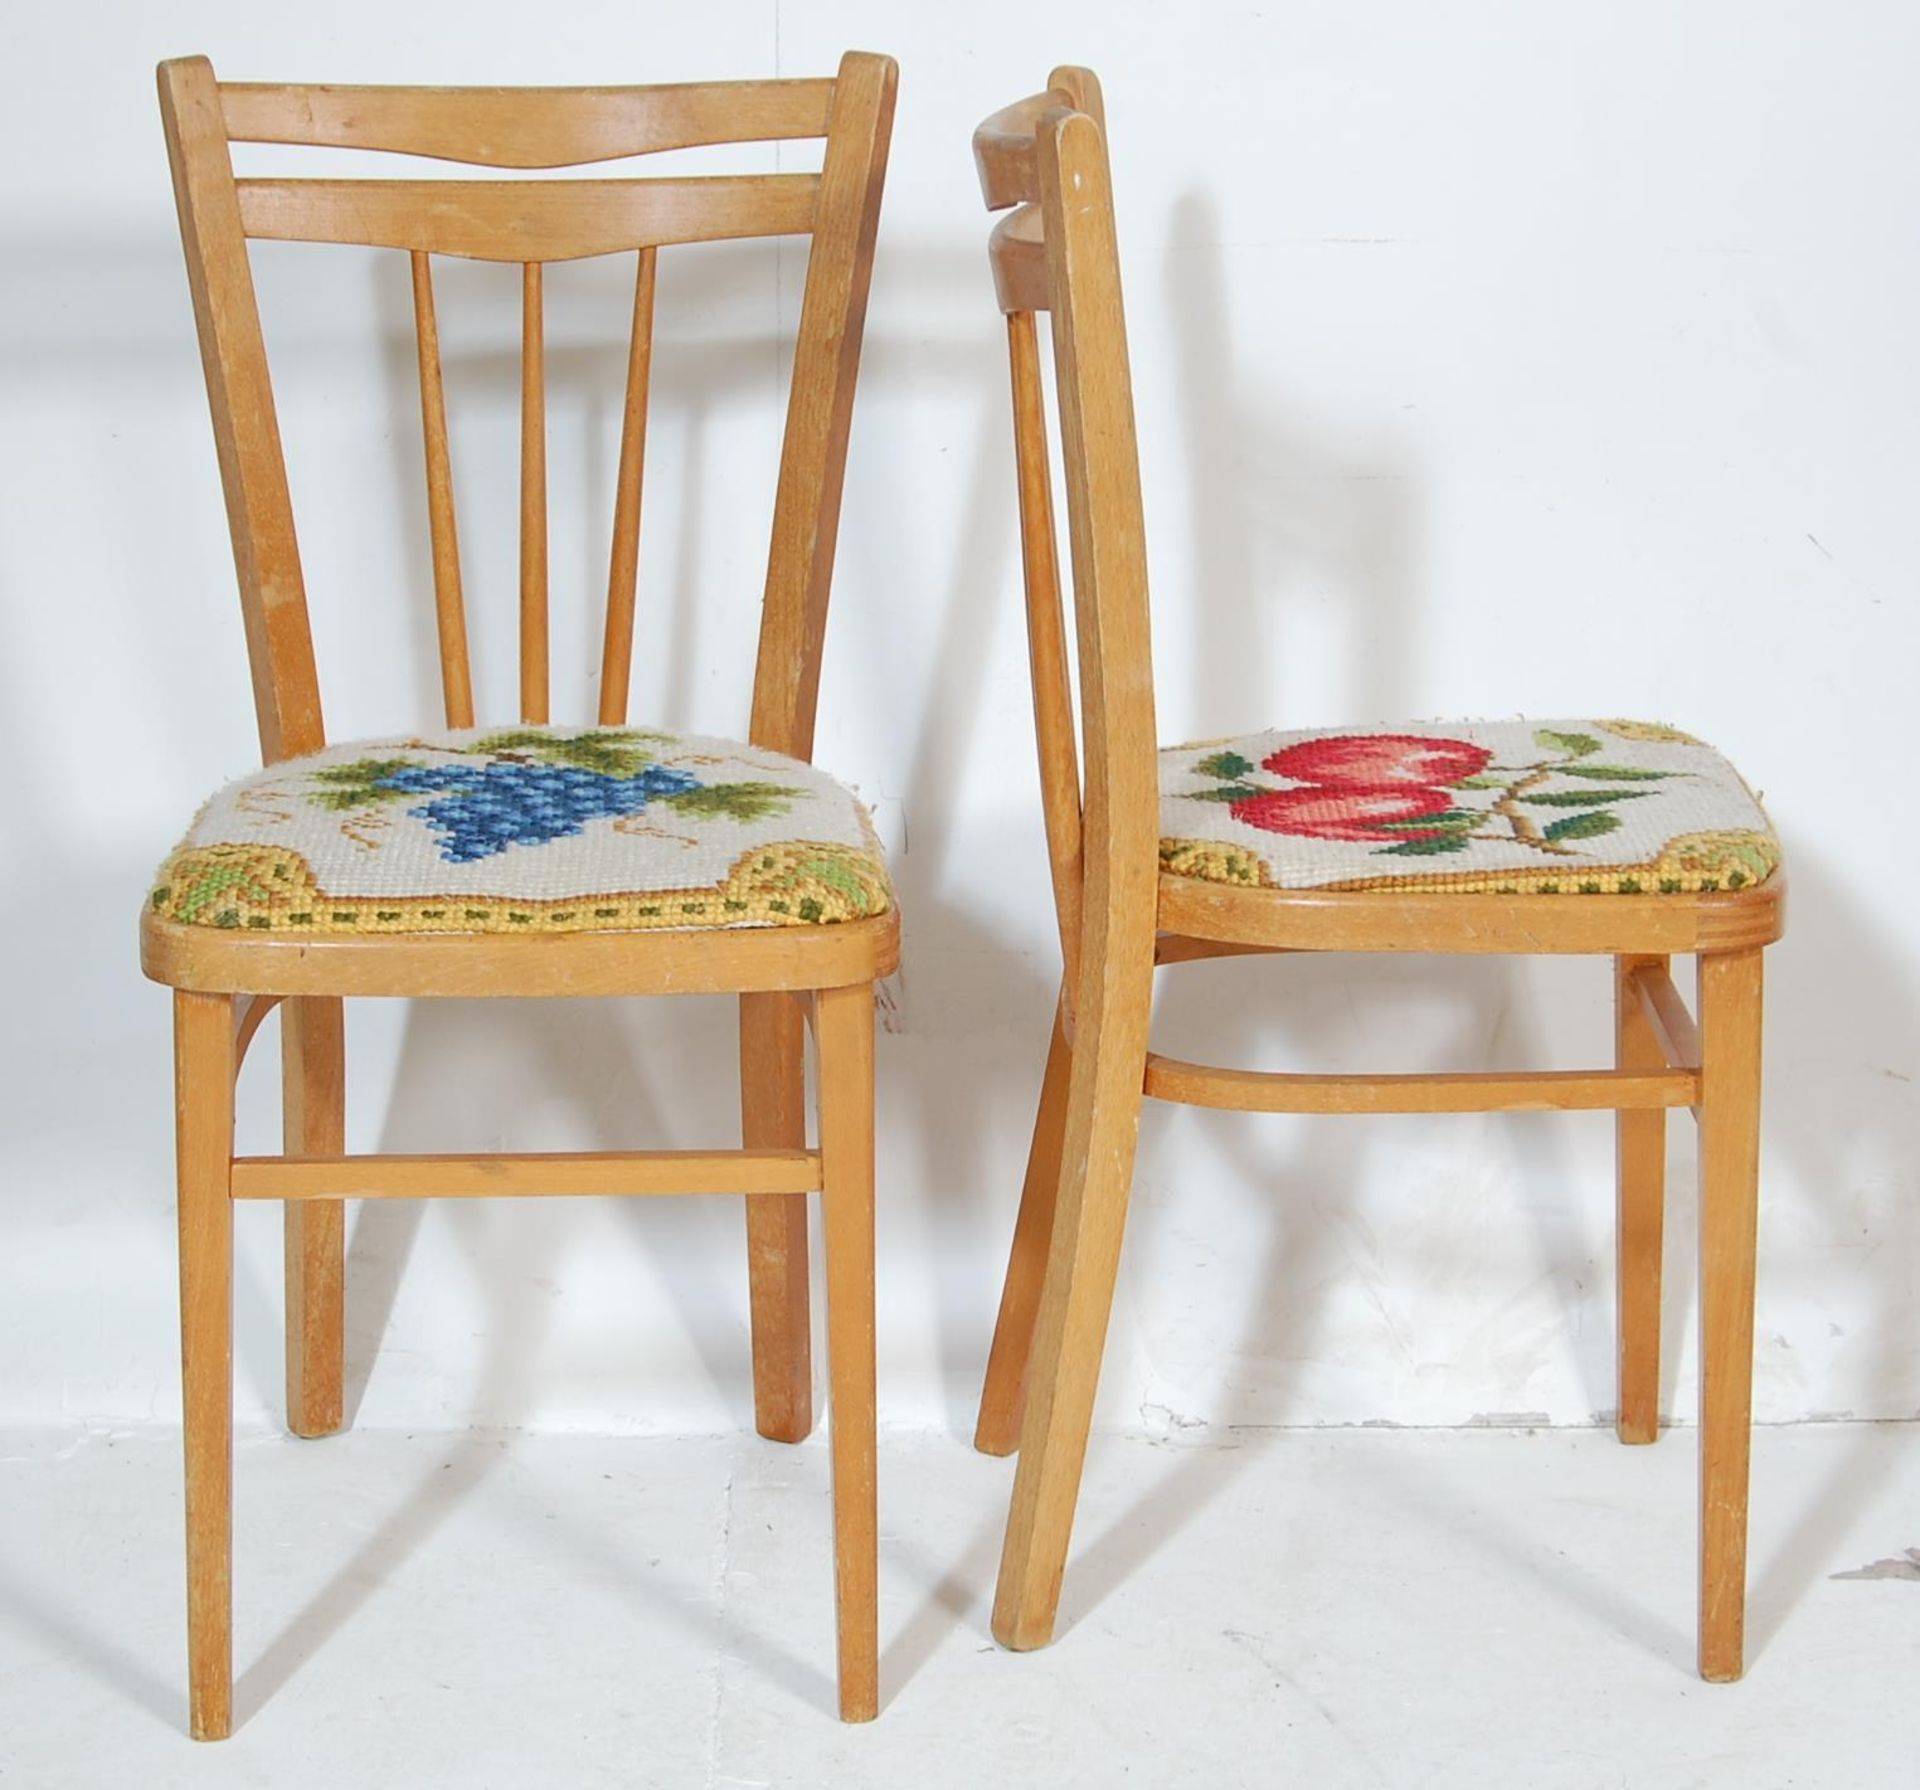 FIVE RETRO 20TH CENTURY DINING CHAIRS / KITCHEN CHAIRS - Image 4 of 5